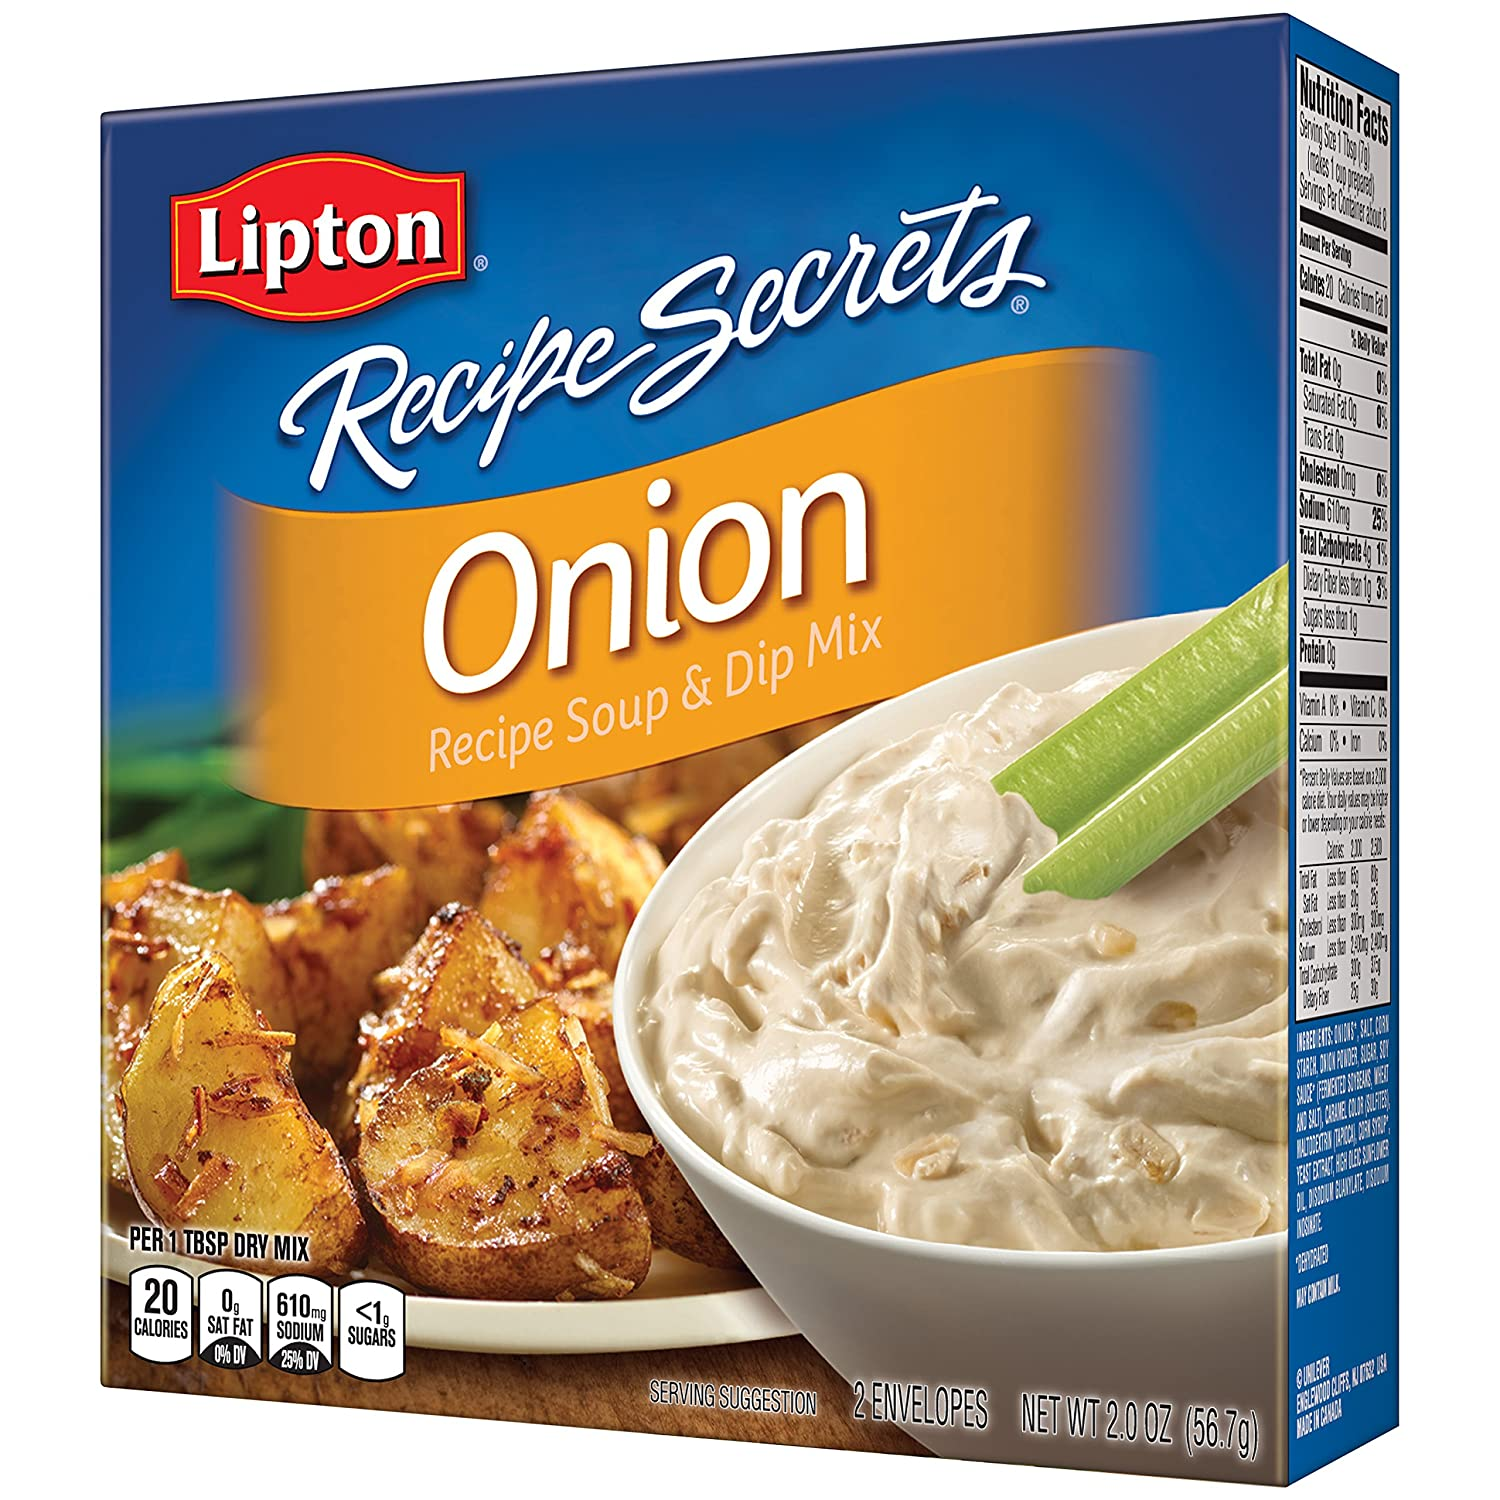 Lipton Recipe Secrets Recipe Soup & Dip Mix Onion is a tasty onion broth that can be used as a soup, and is great for dip, burgers, meatloaf, roasted potatoes, and many more family favorite recipes. It's perfect for making our crowd pleasing Classic Onion Dip. Lipton Recipe Secrets Onion (2 oz) is a Soup & Dip Mix with a classic Onion flavor.